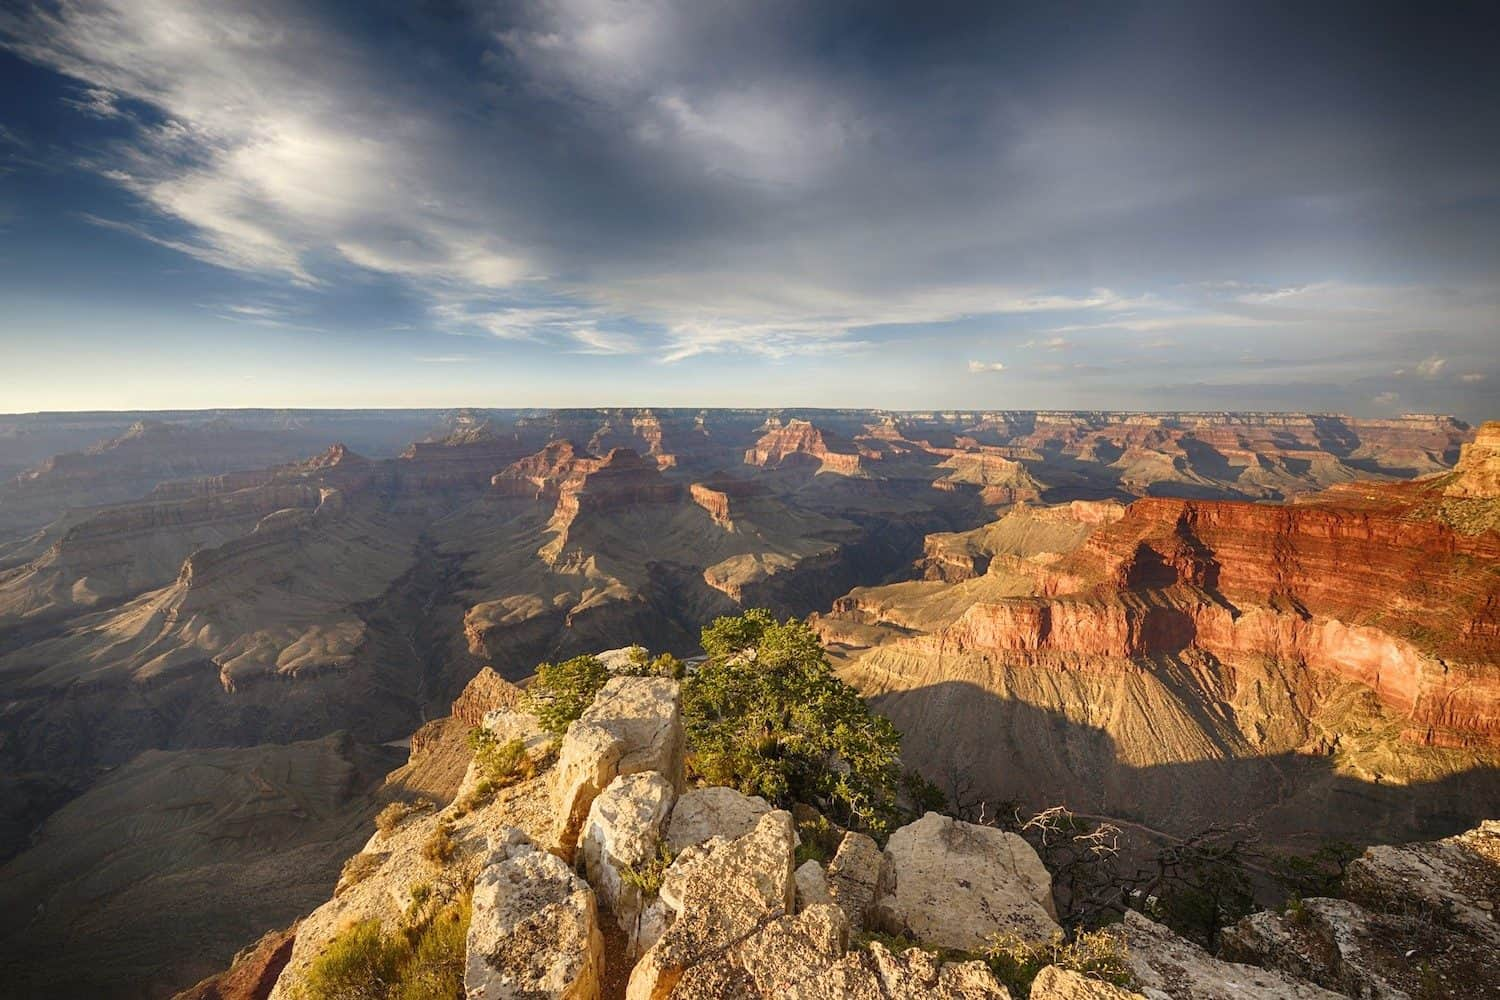 Grand Canyon - screaming_monkey via Flickr